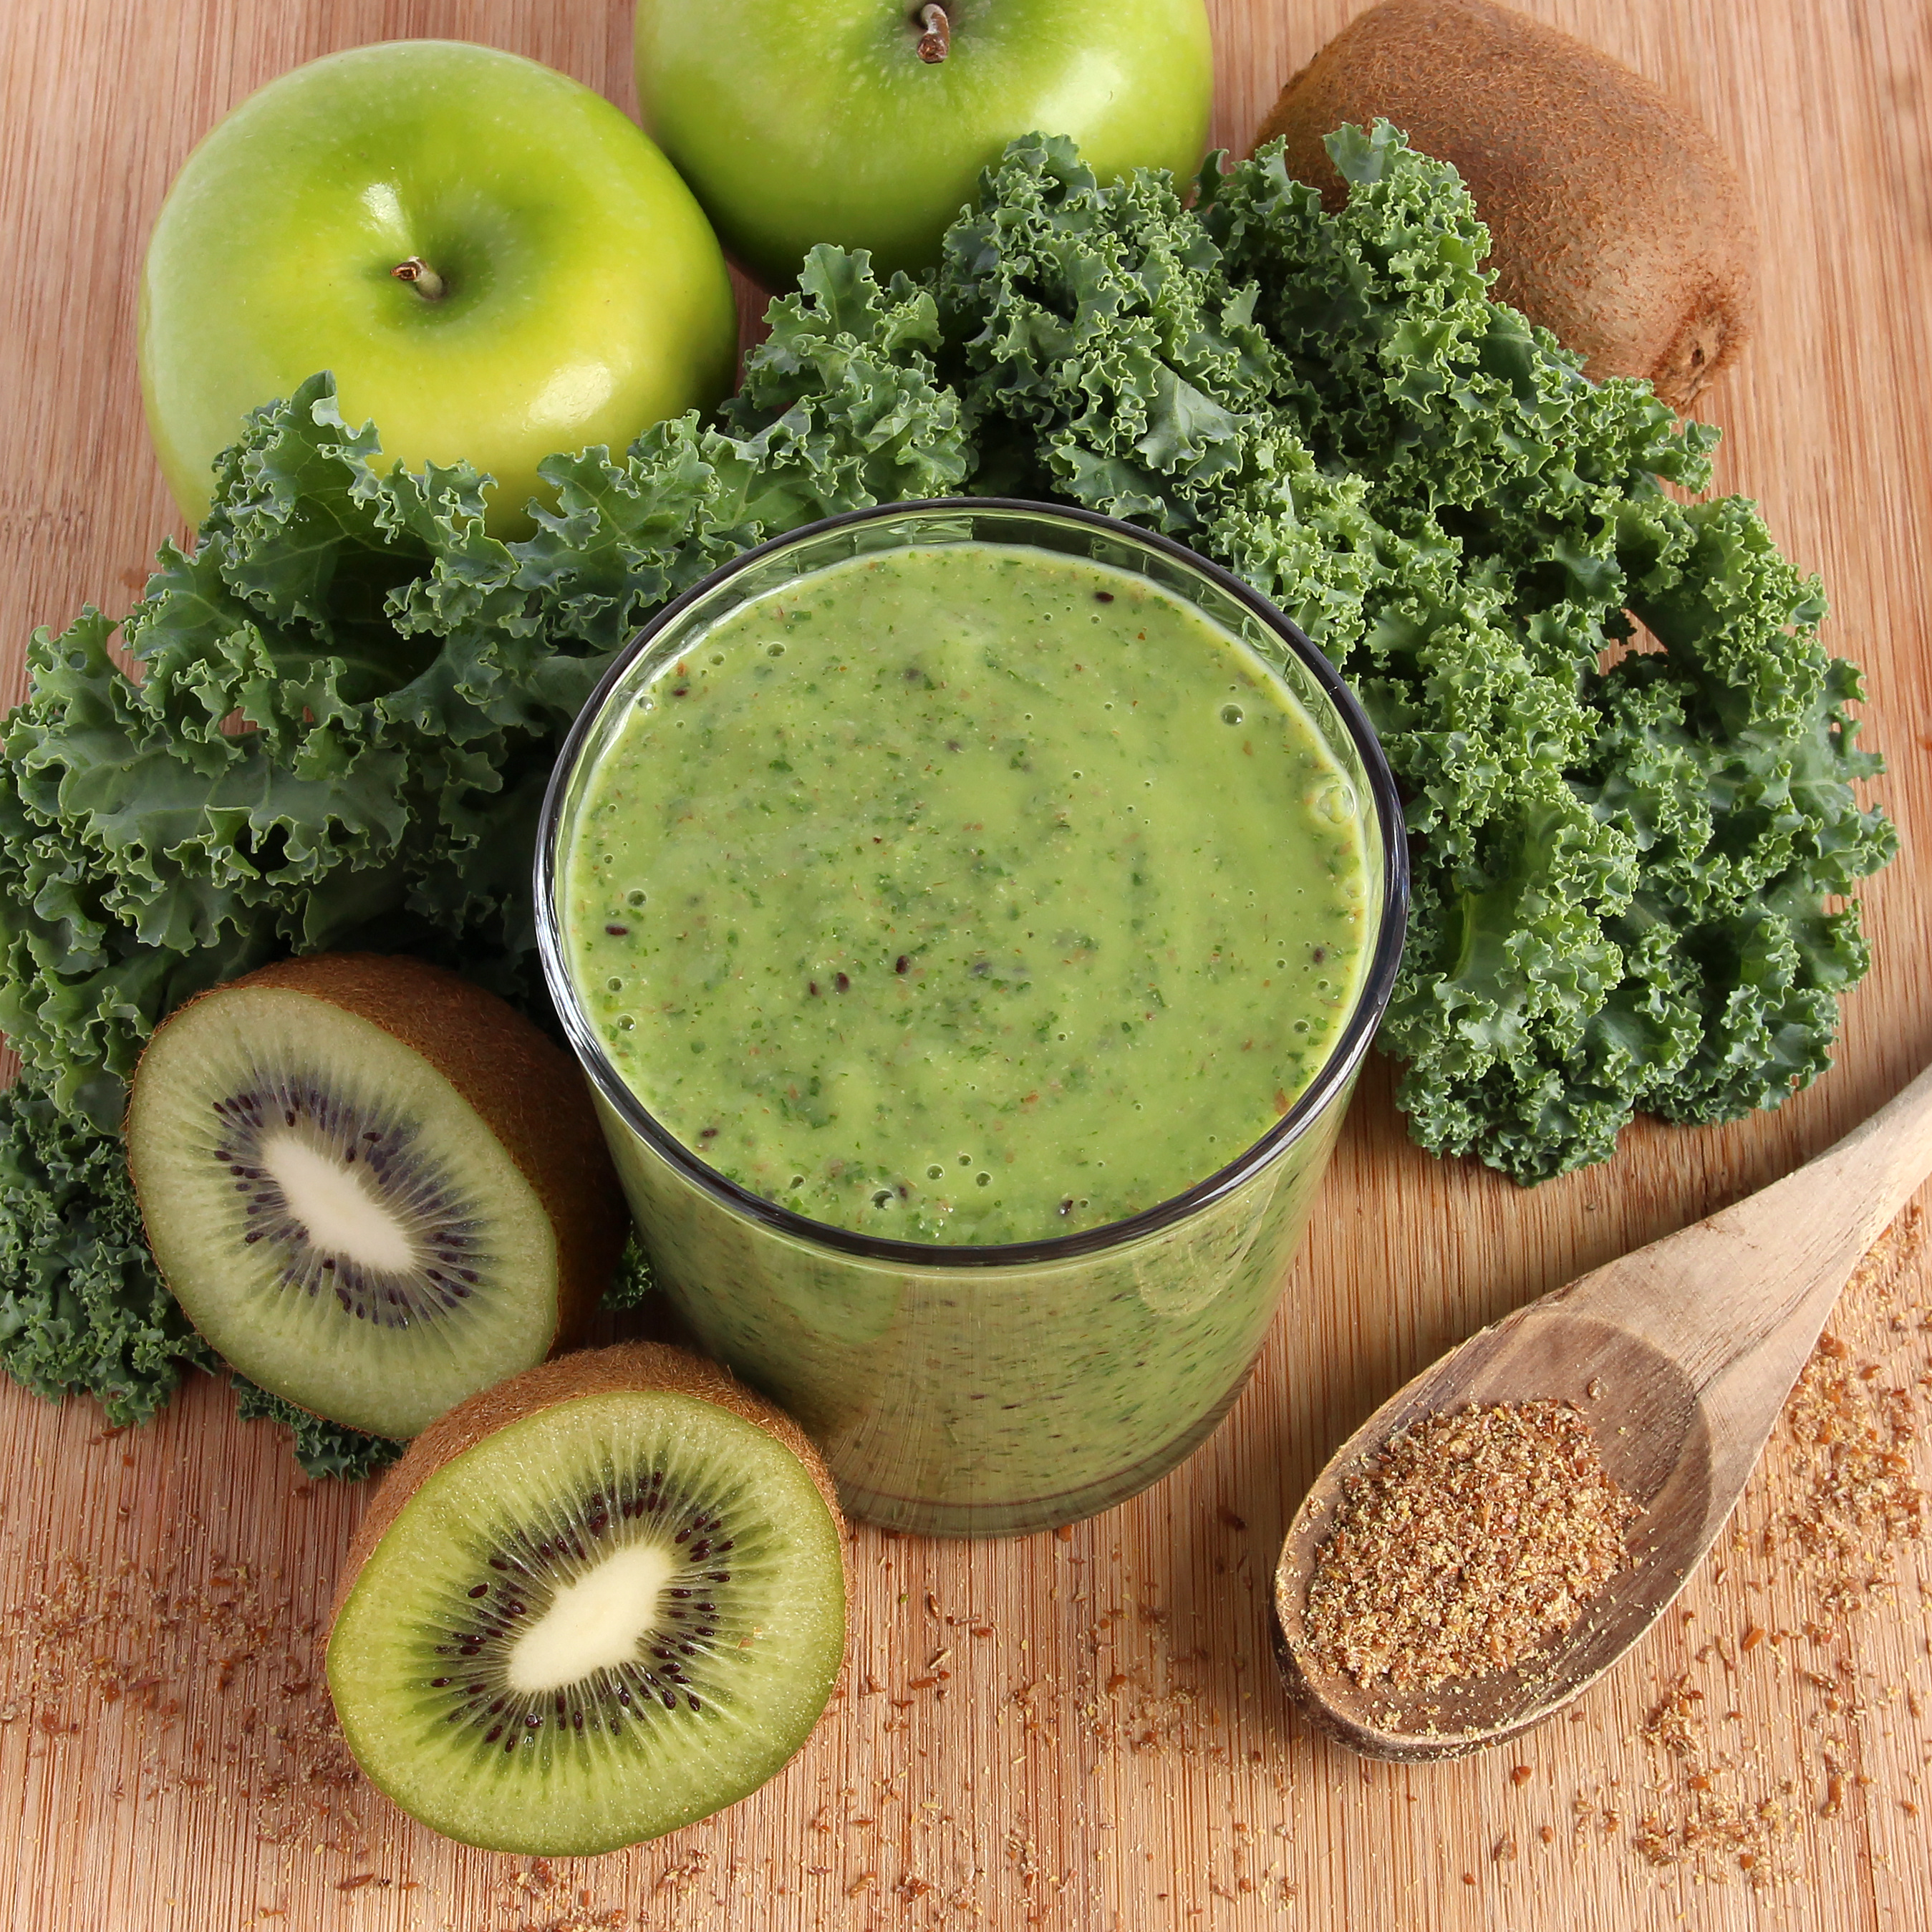 Is kale juice good for you